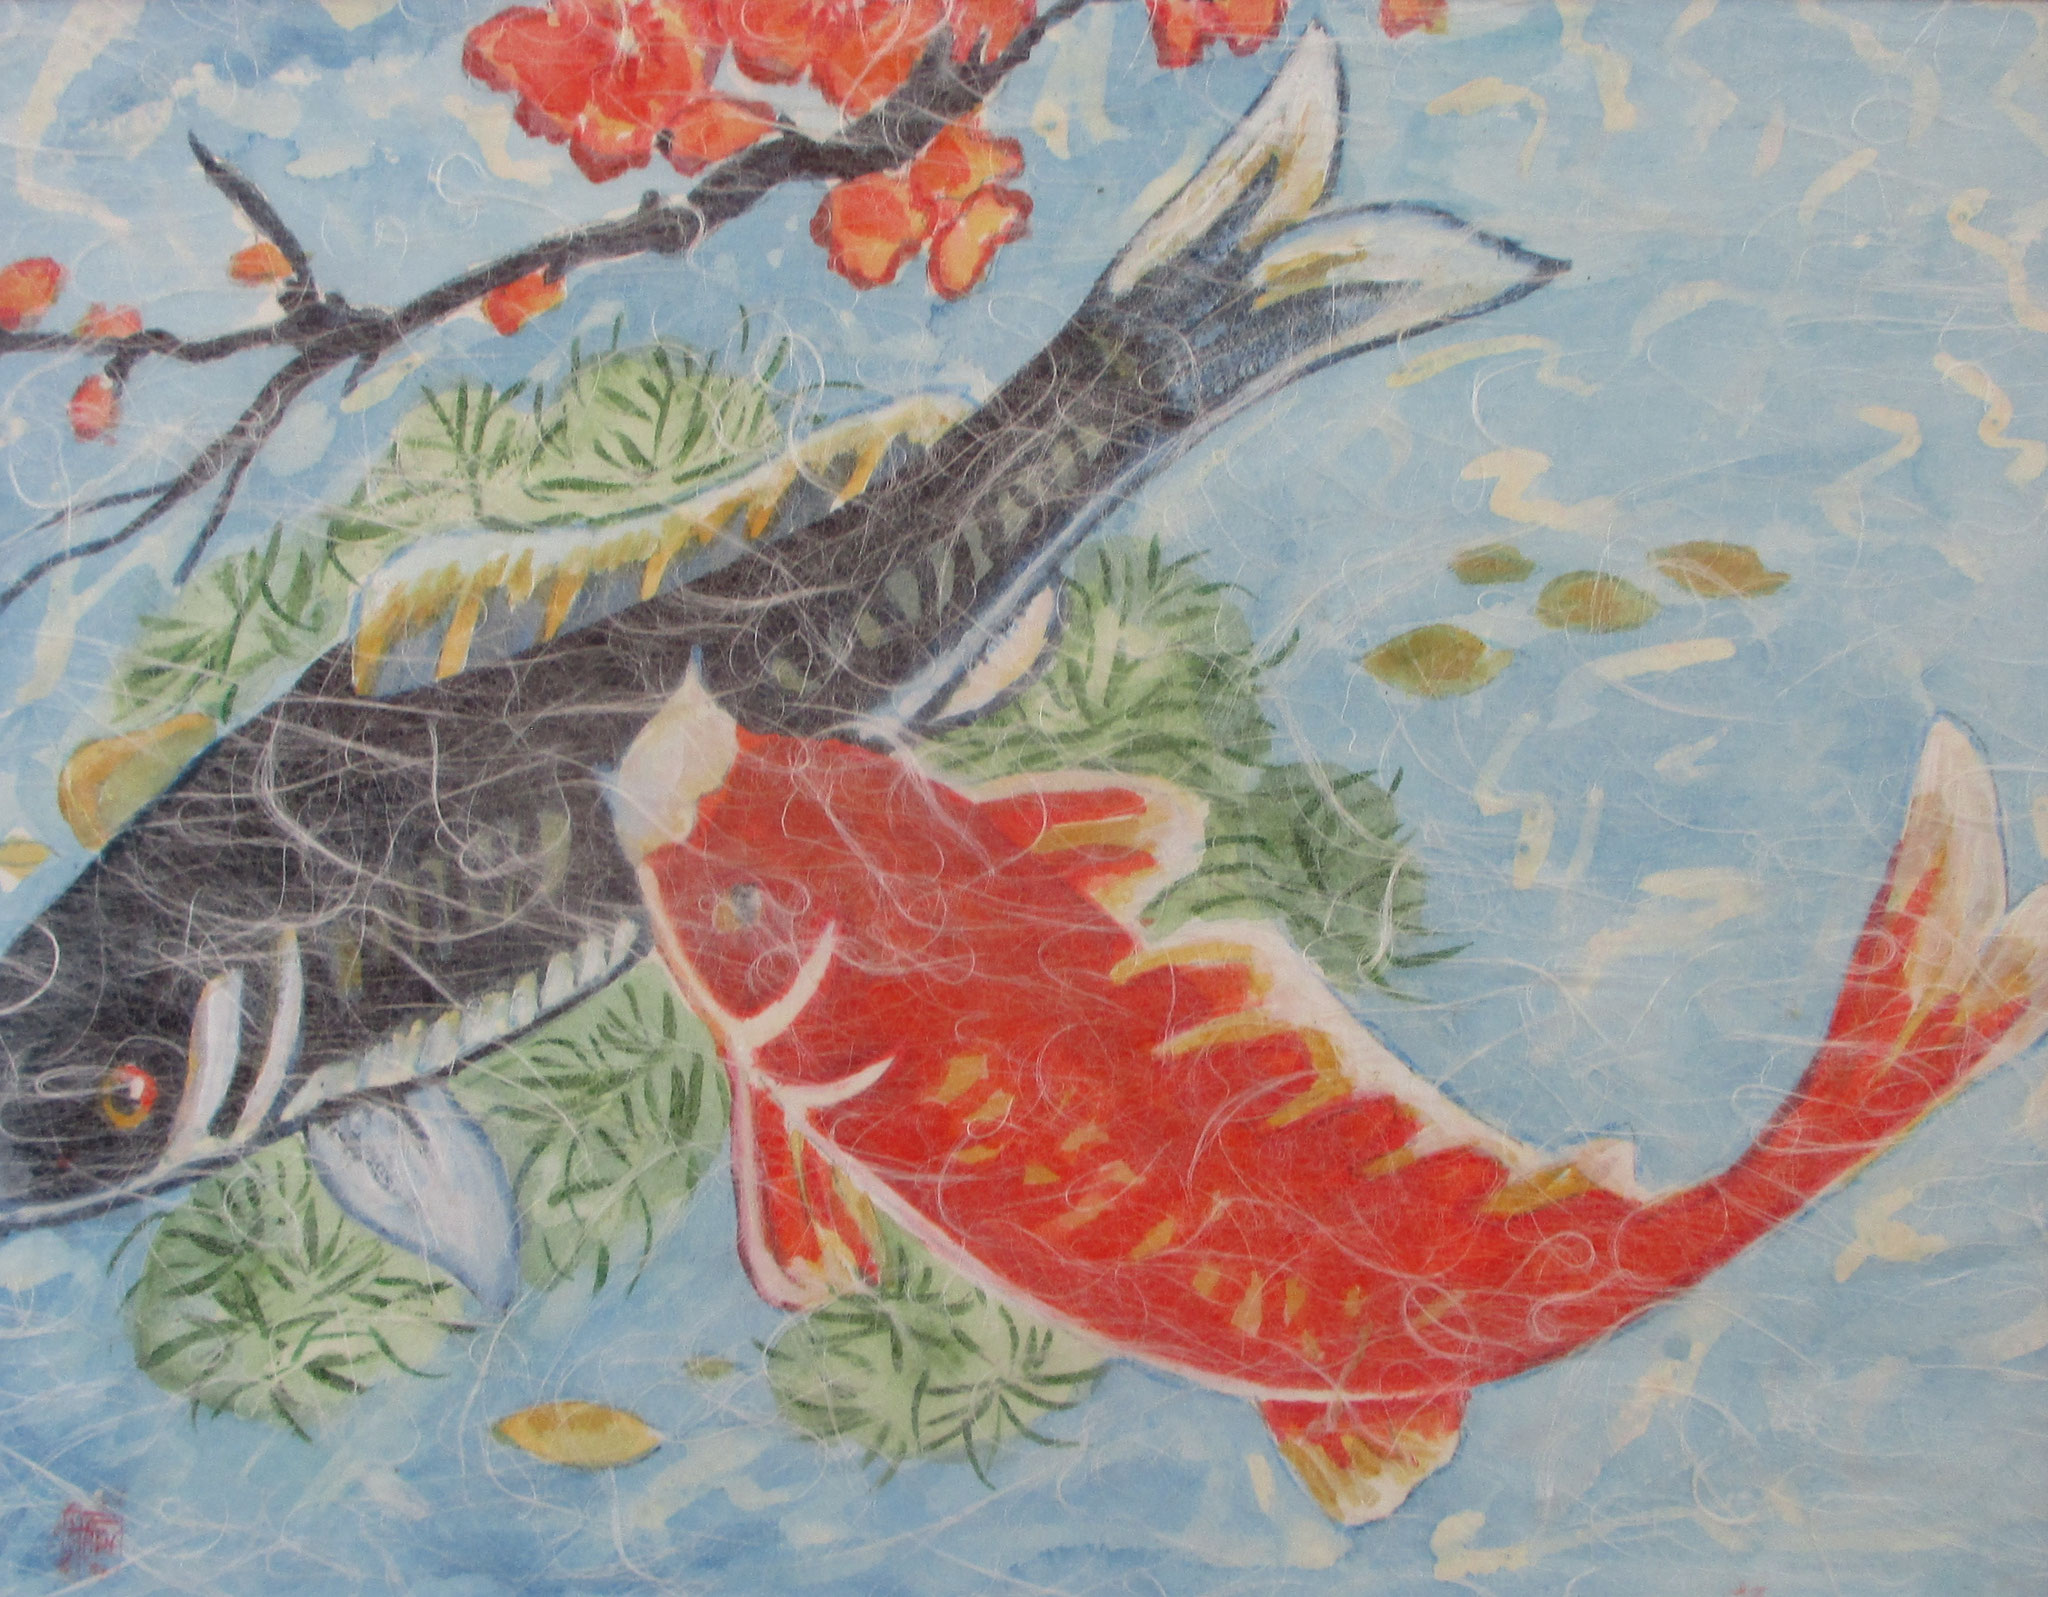 Koi, watercolor, Washi paper overlay, 20 x 16, matted, 2019